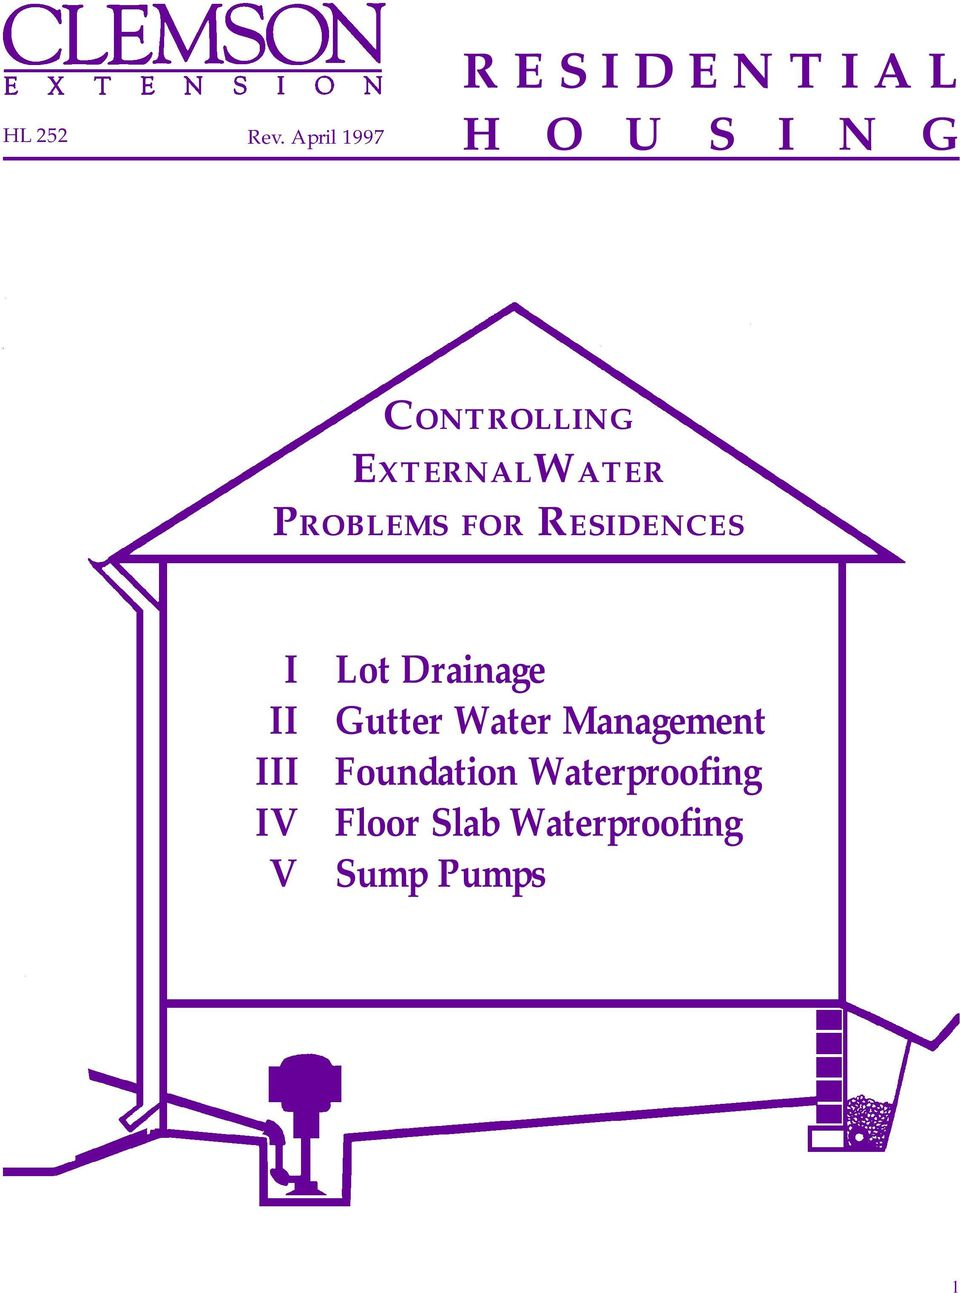 CONTROLLING EXTERNALWATER PROBLEMS FOR RESIDENCES I II